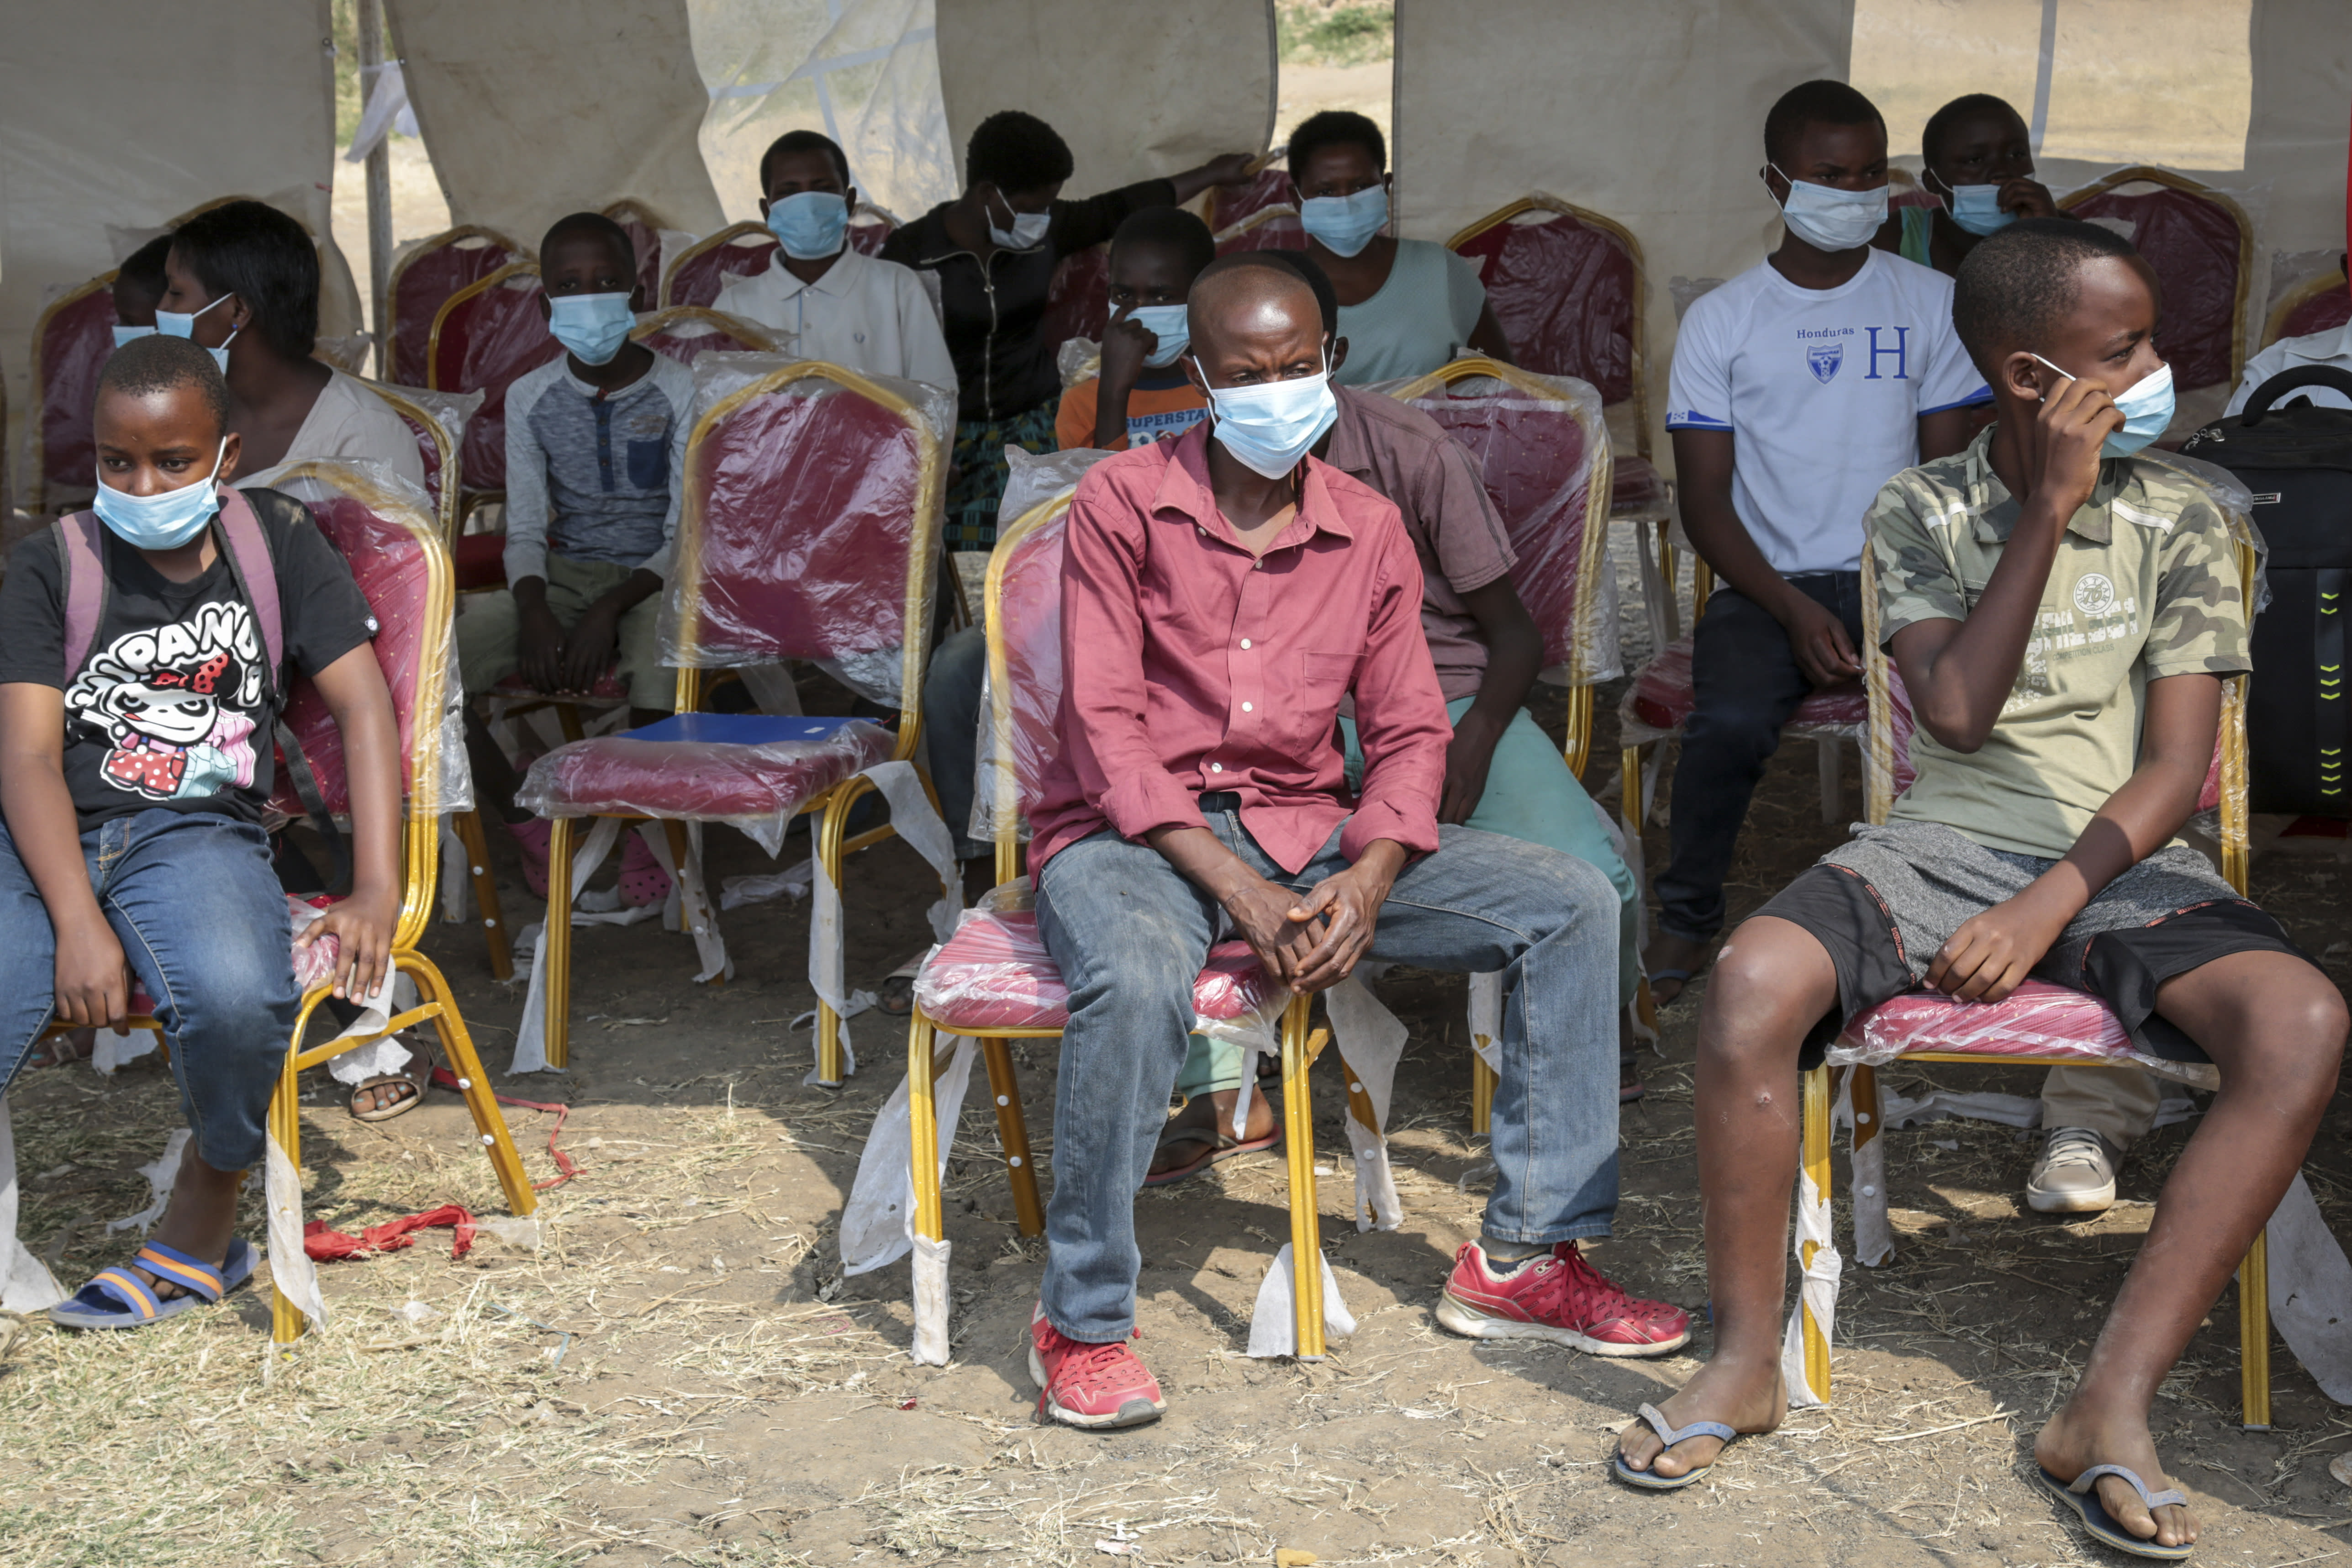 Members of the public wait to be tested for the coronavirus in Bujumbura, Burundi Monday, July 6, 2020. Burundi launched a campaign of mass screening for COVID-19 on Monday in the country's largest city Bujumbura, indicating that the new president Evariste Ndayishimiye is implementing policies to combat the spread of the disease. (AP Photo/Berthier Mugiraneza)